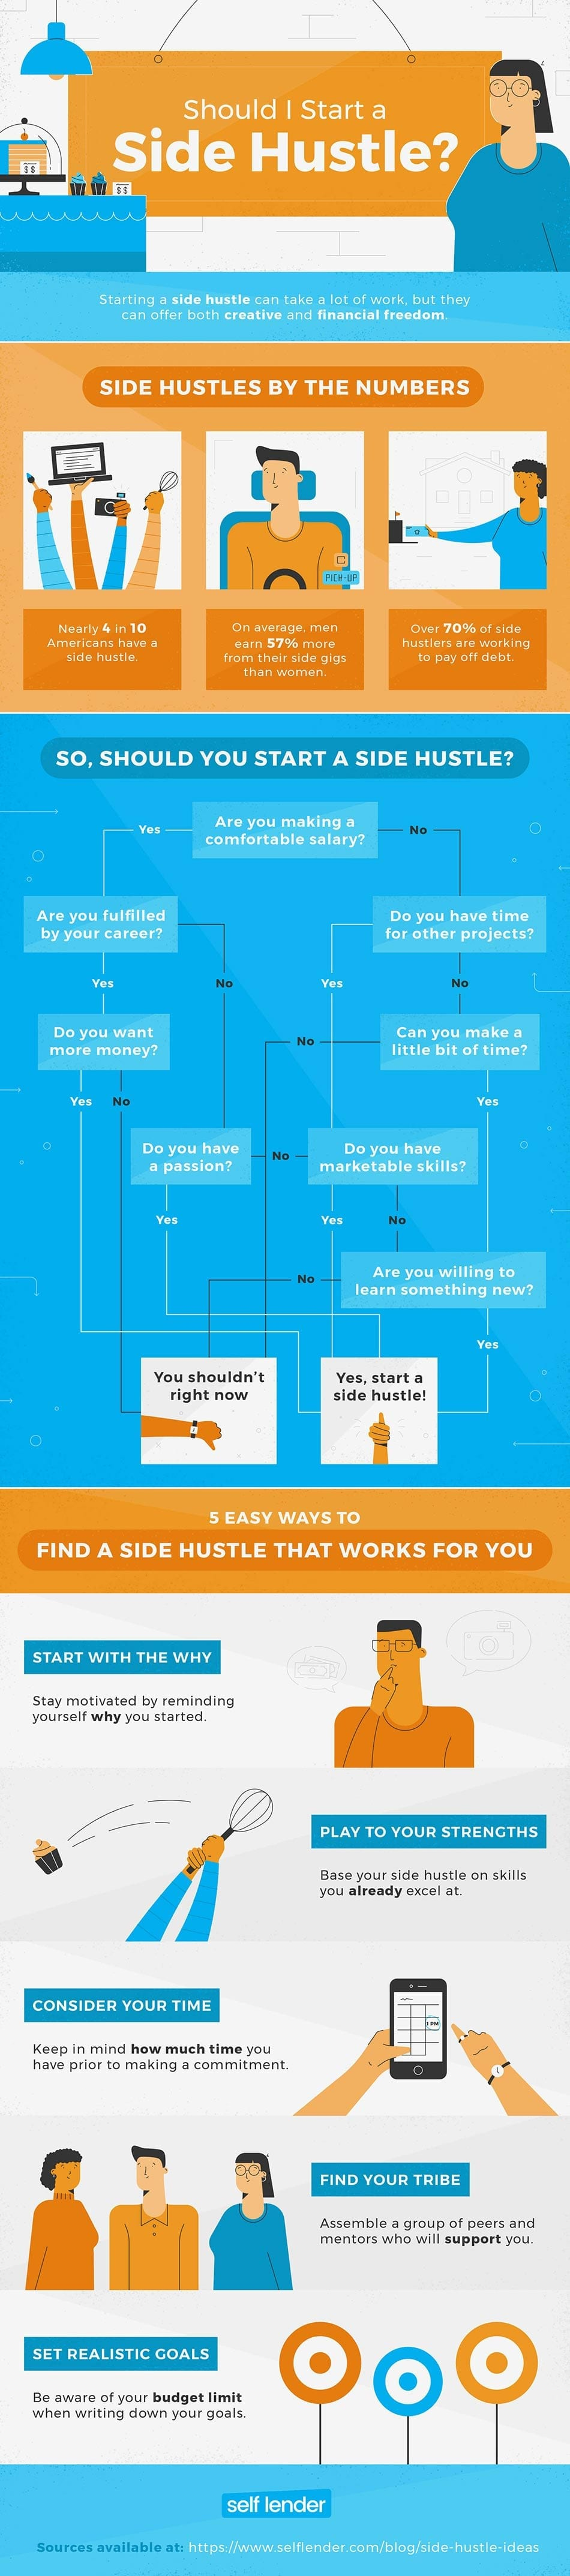 Should you start a side hustle infographic